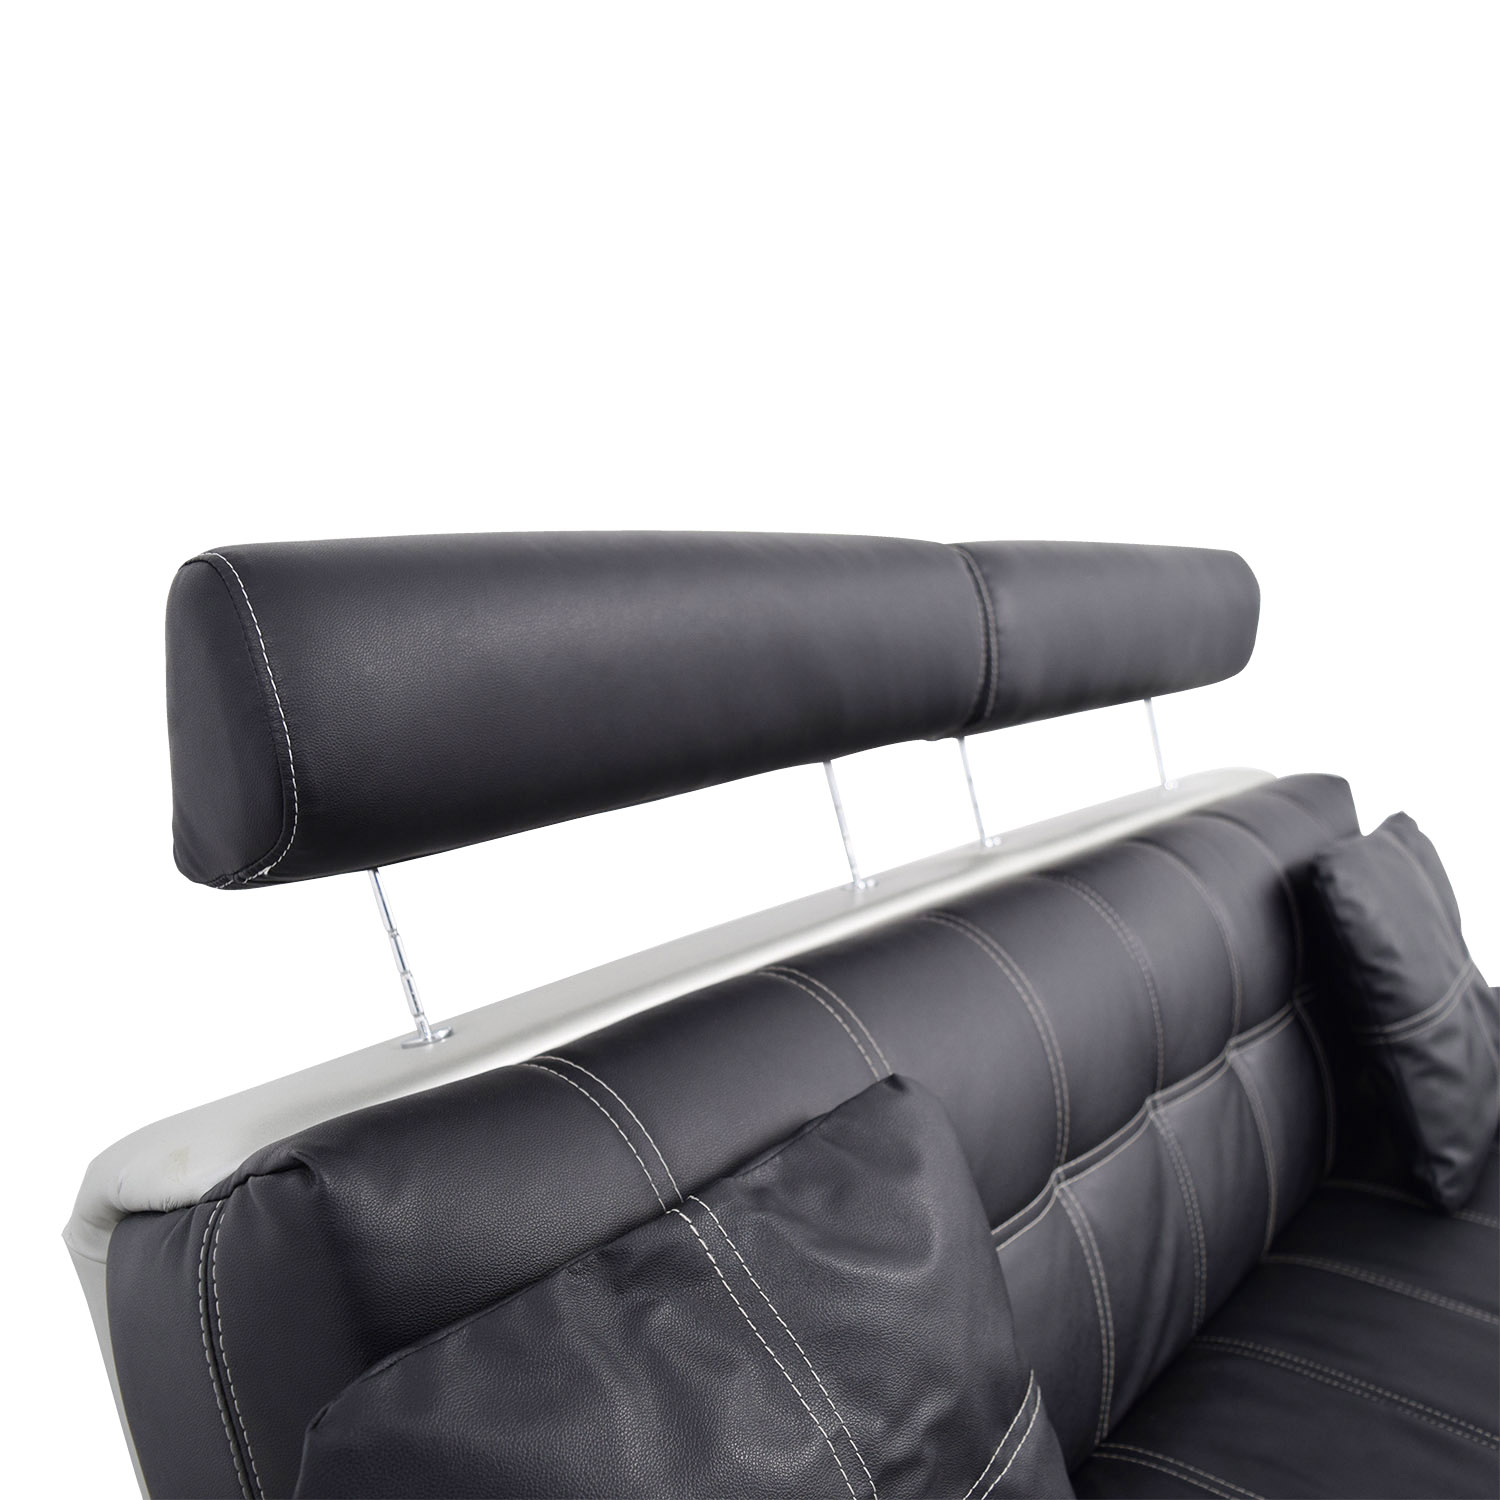 OFF Black Leather Sofa with Pillows Sofas